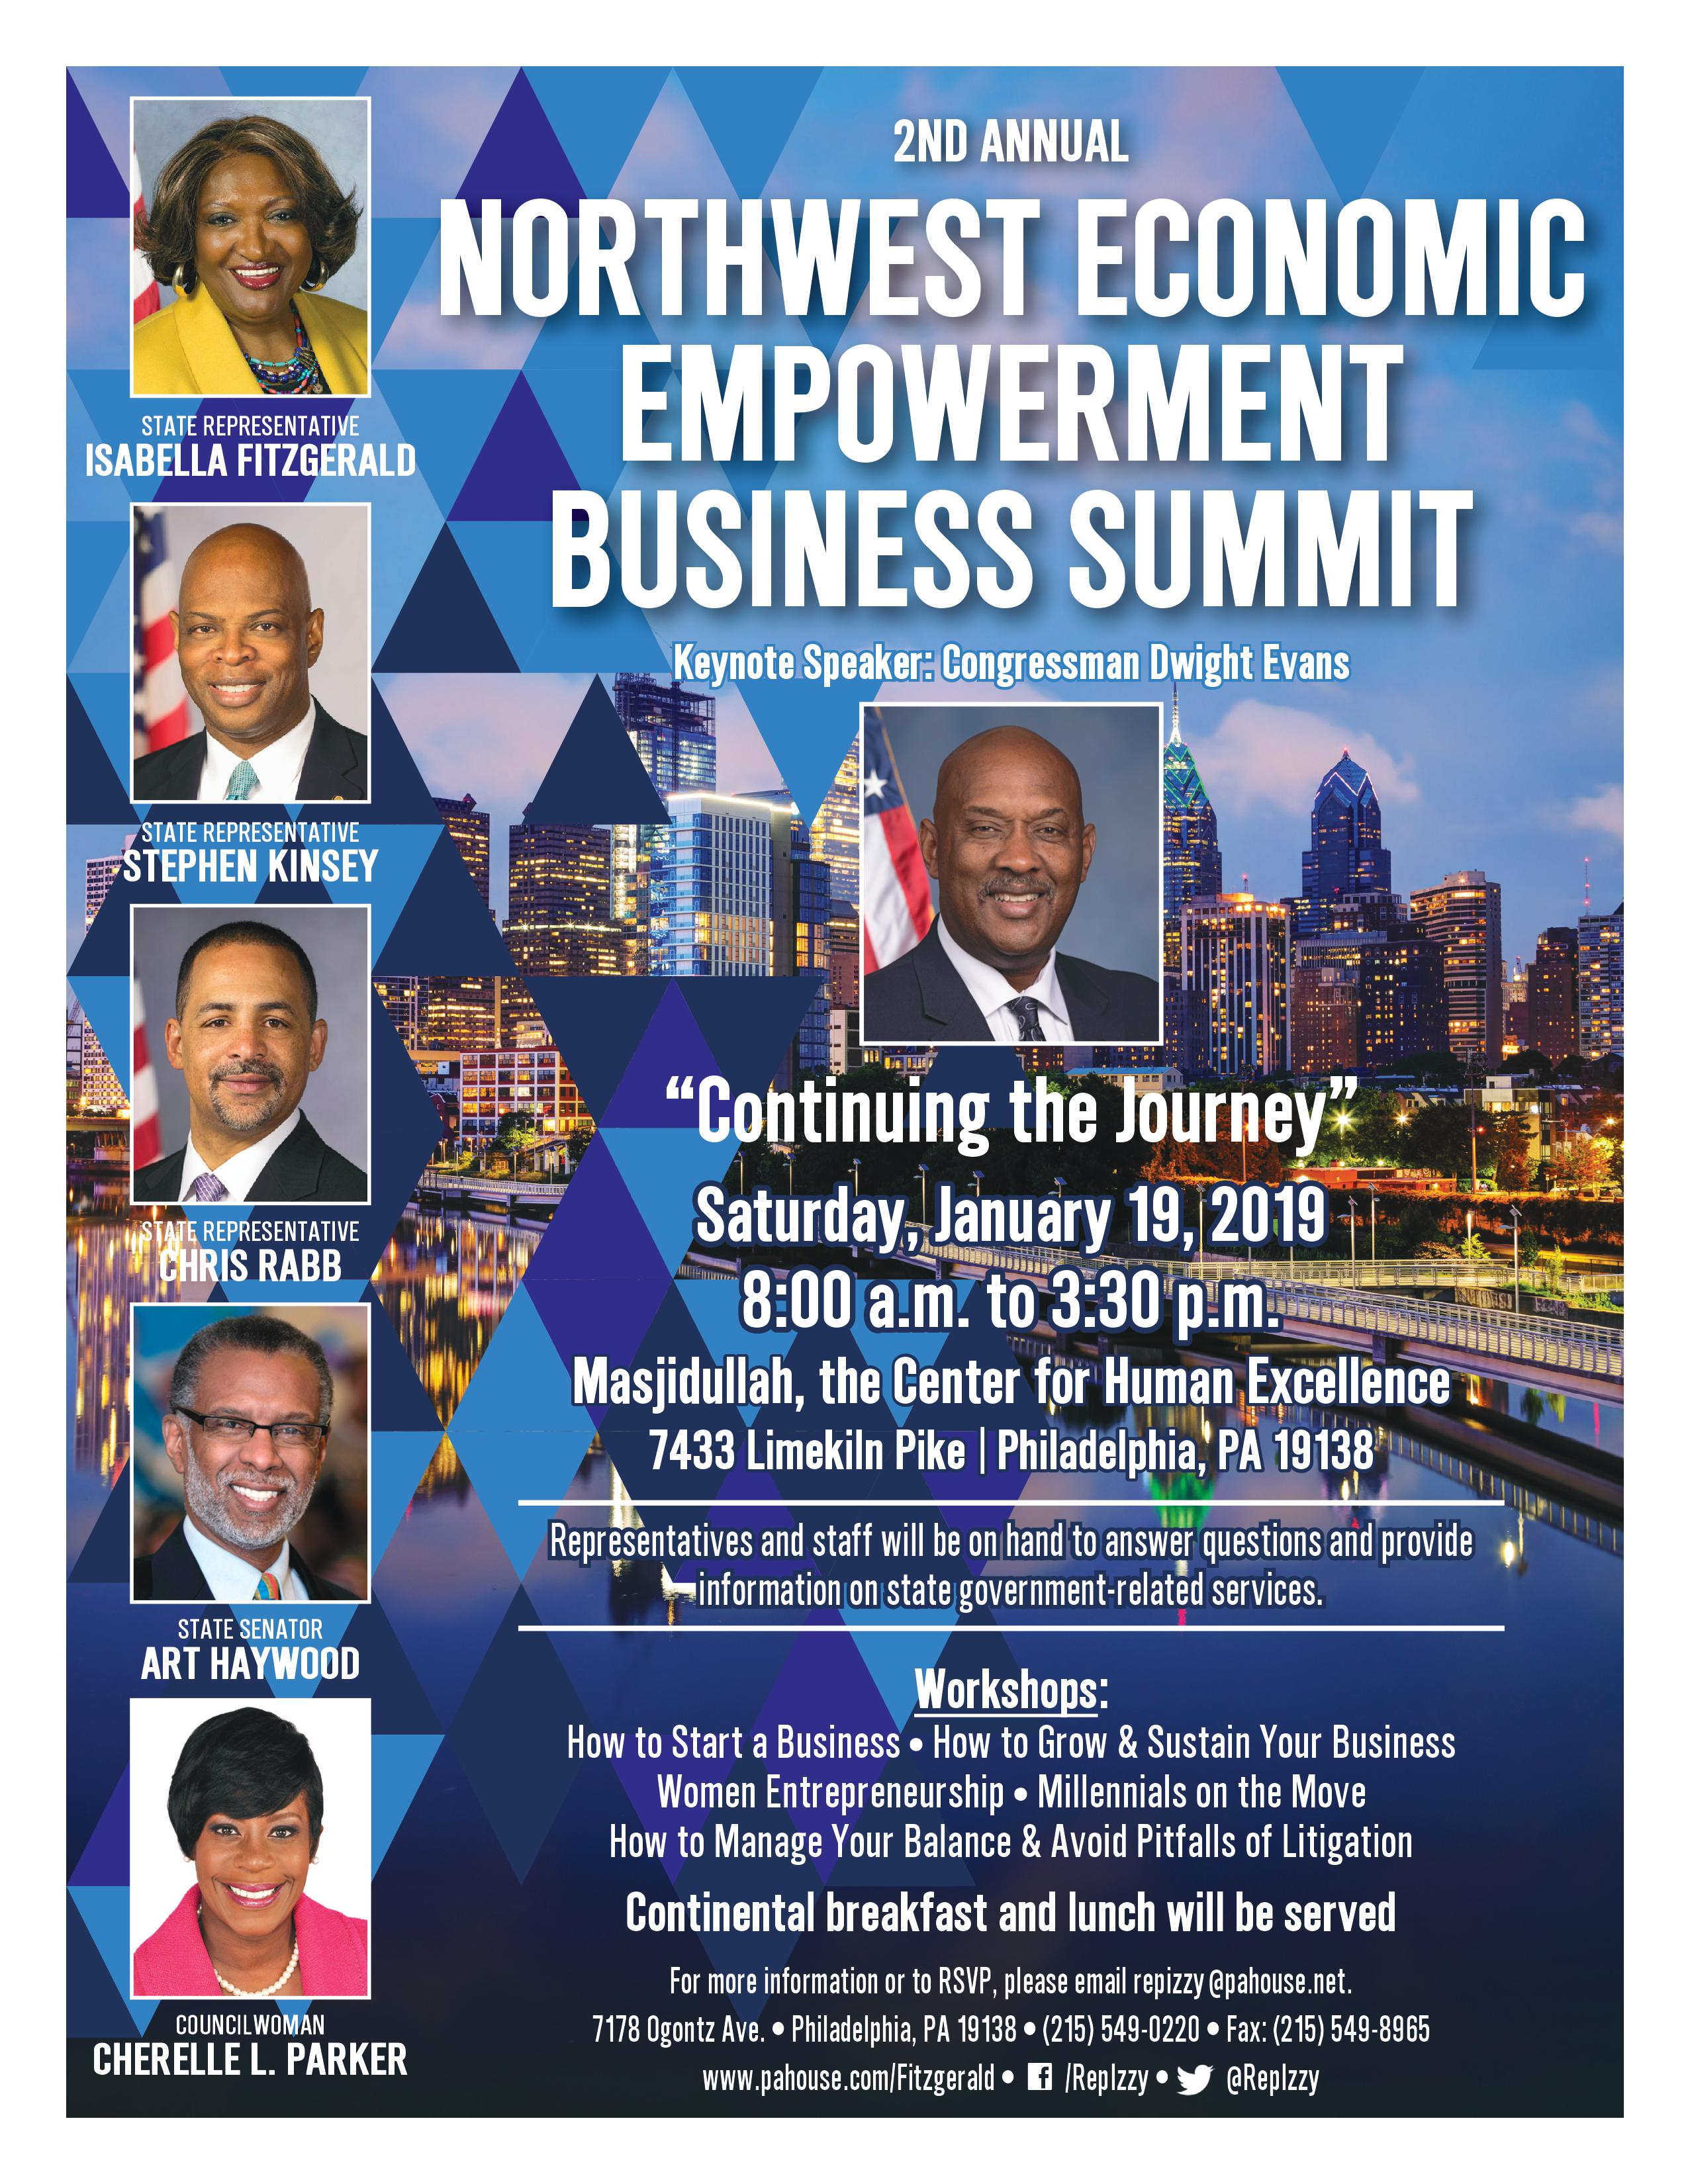 Northwest Economic Empowerment Business Summit : How to grow and sustain your business